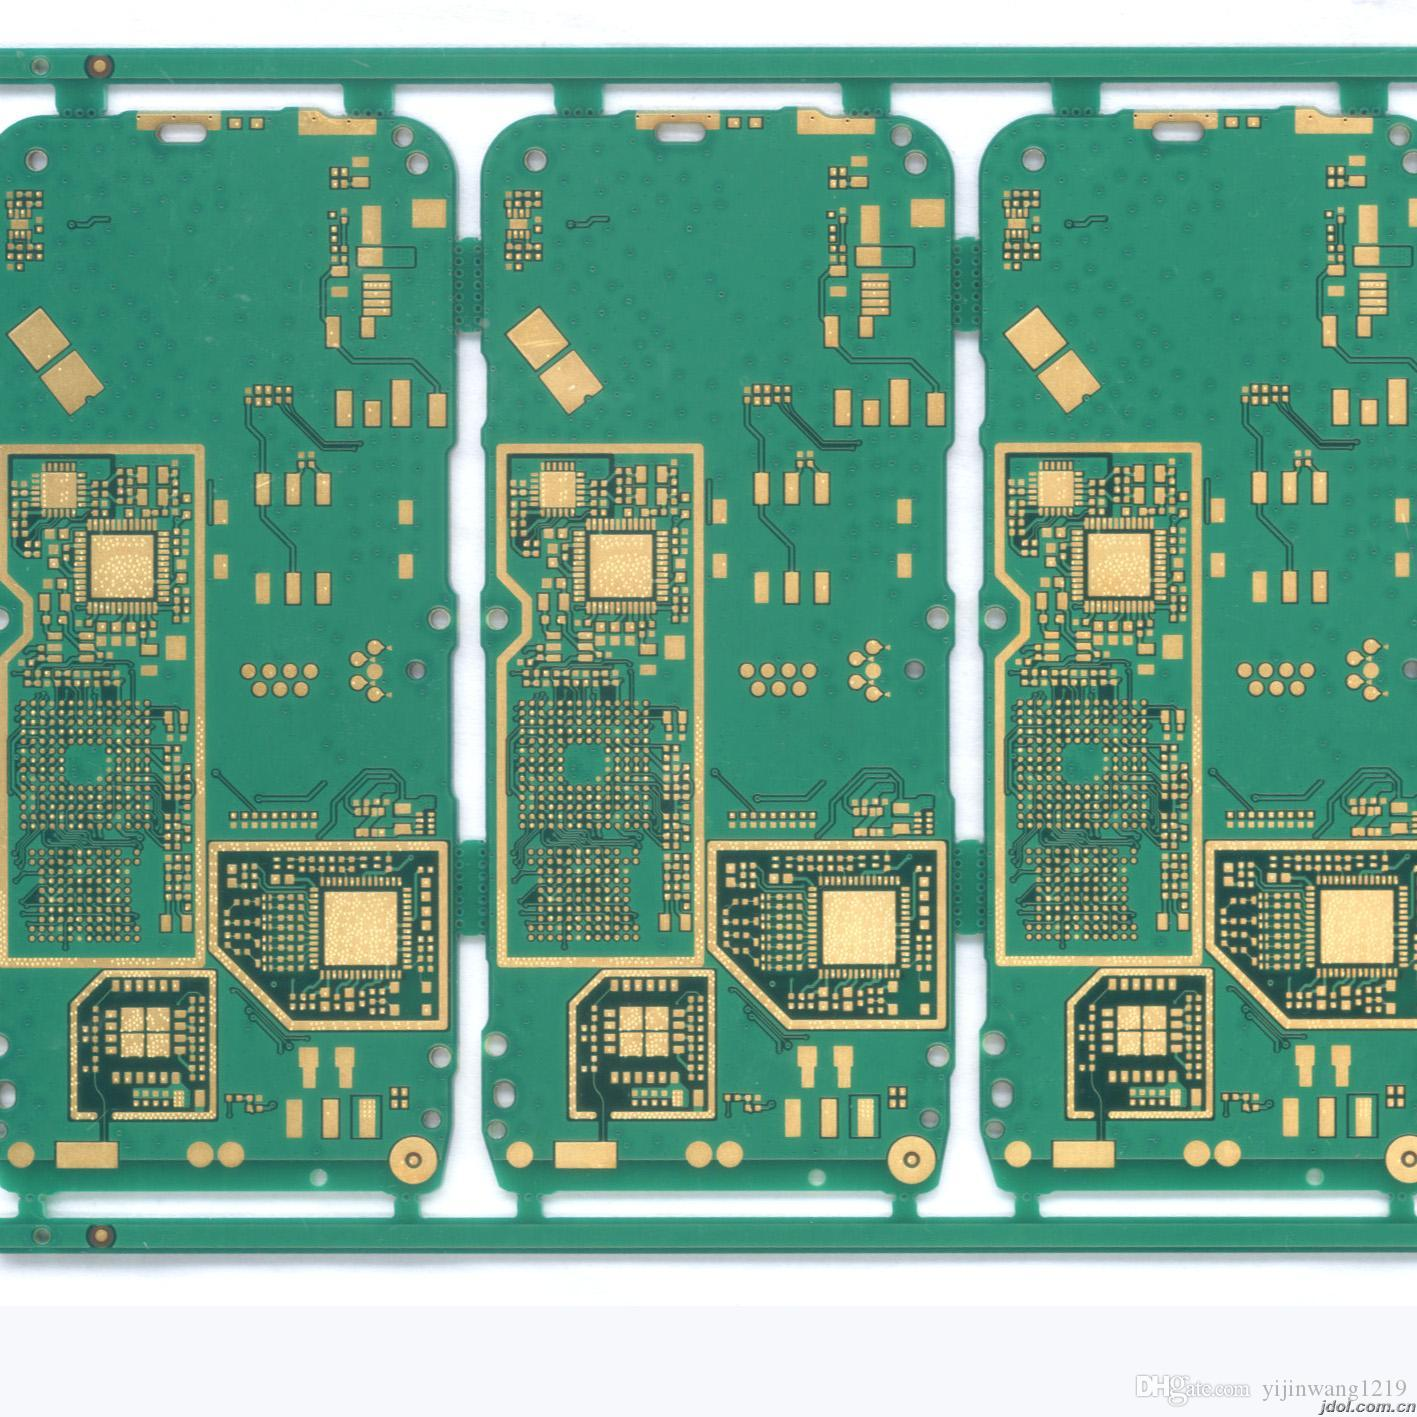 Pcb Mass Producton 2 Layers 24layers Board Manufacturer Prototype Buy Circuit Pcbpcb Prototypepcb Maker Supplier Sample Production Small Quantity Fast Run Service